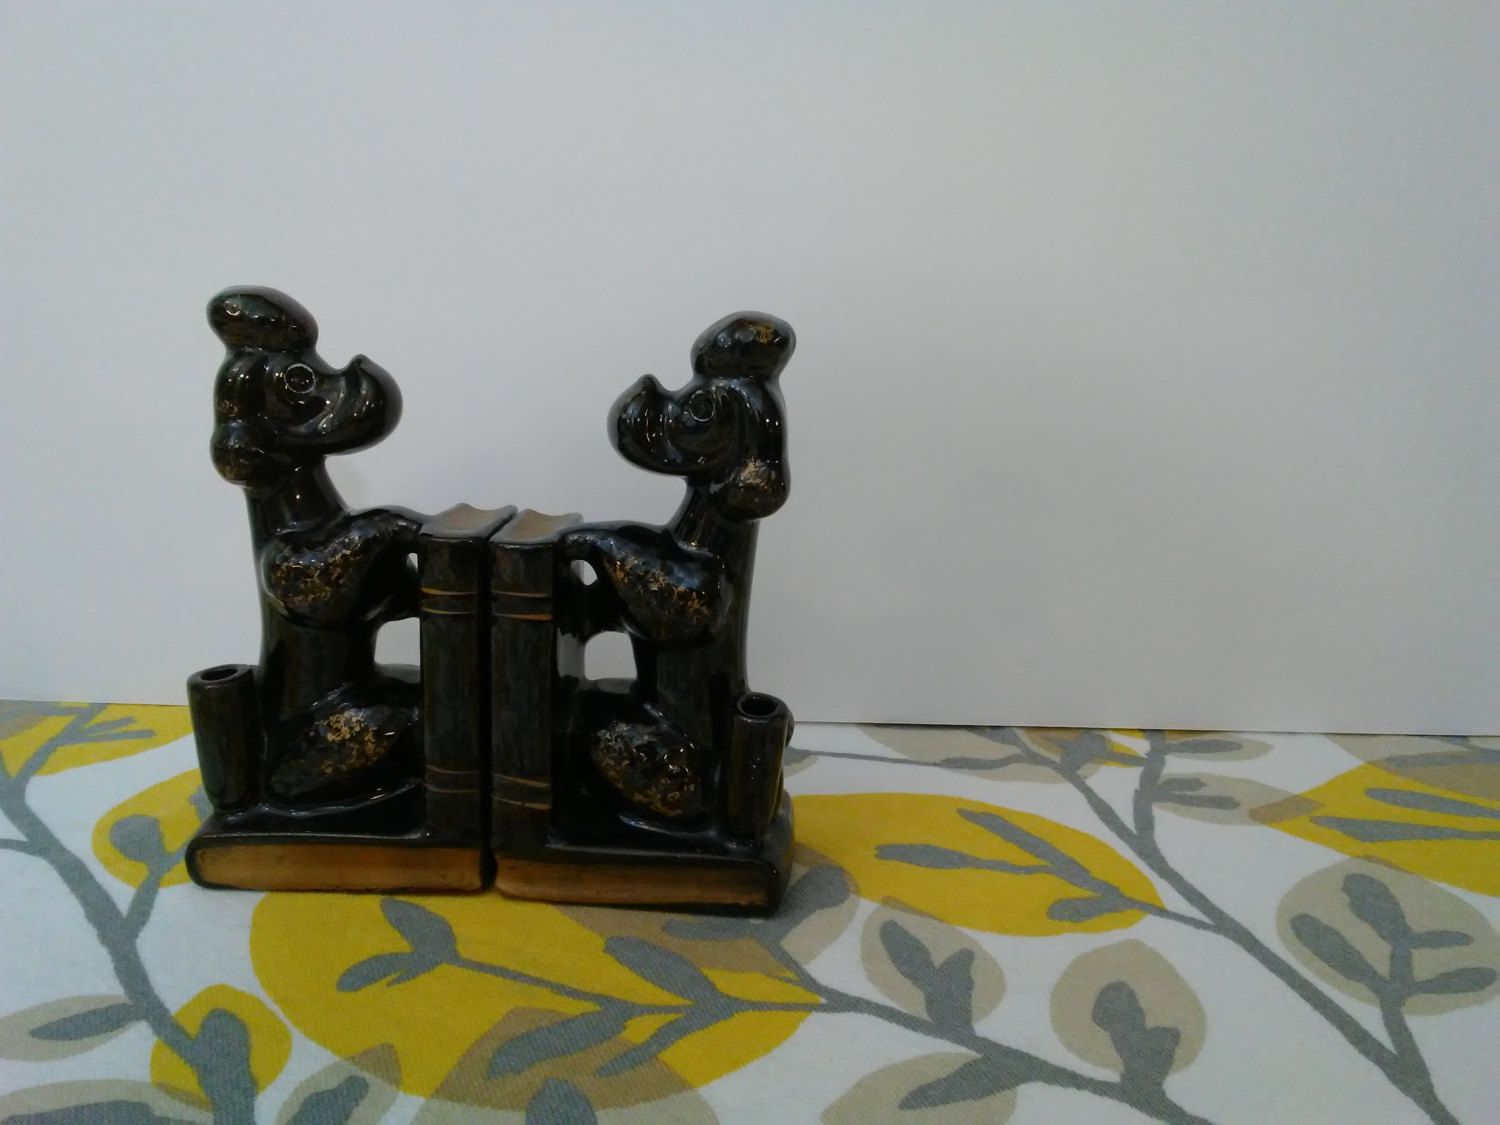 Vintage Poodle Bookends - Japanese Redware Poodles w/ Books & Pen Holder Desk Accessory Office Decor - 1950s 1960s by ShipyardMillies on Etsy